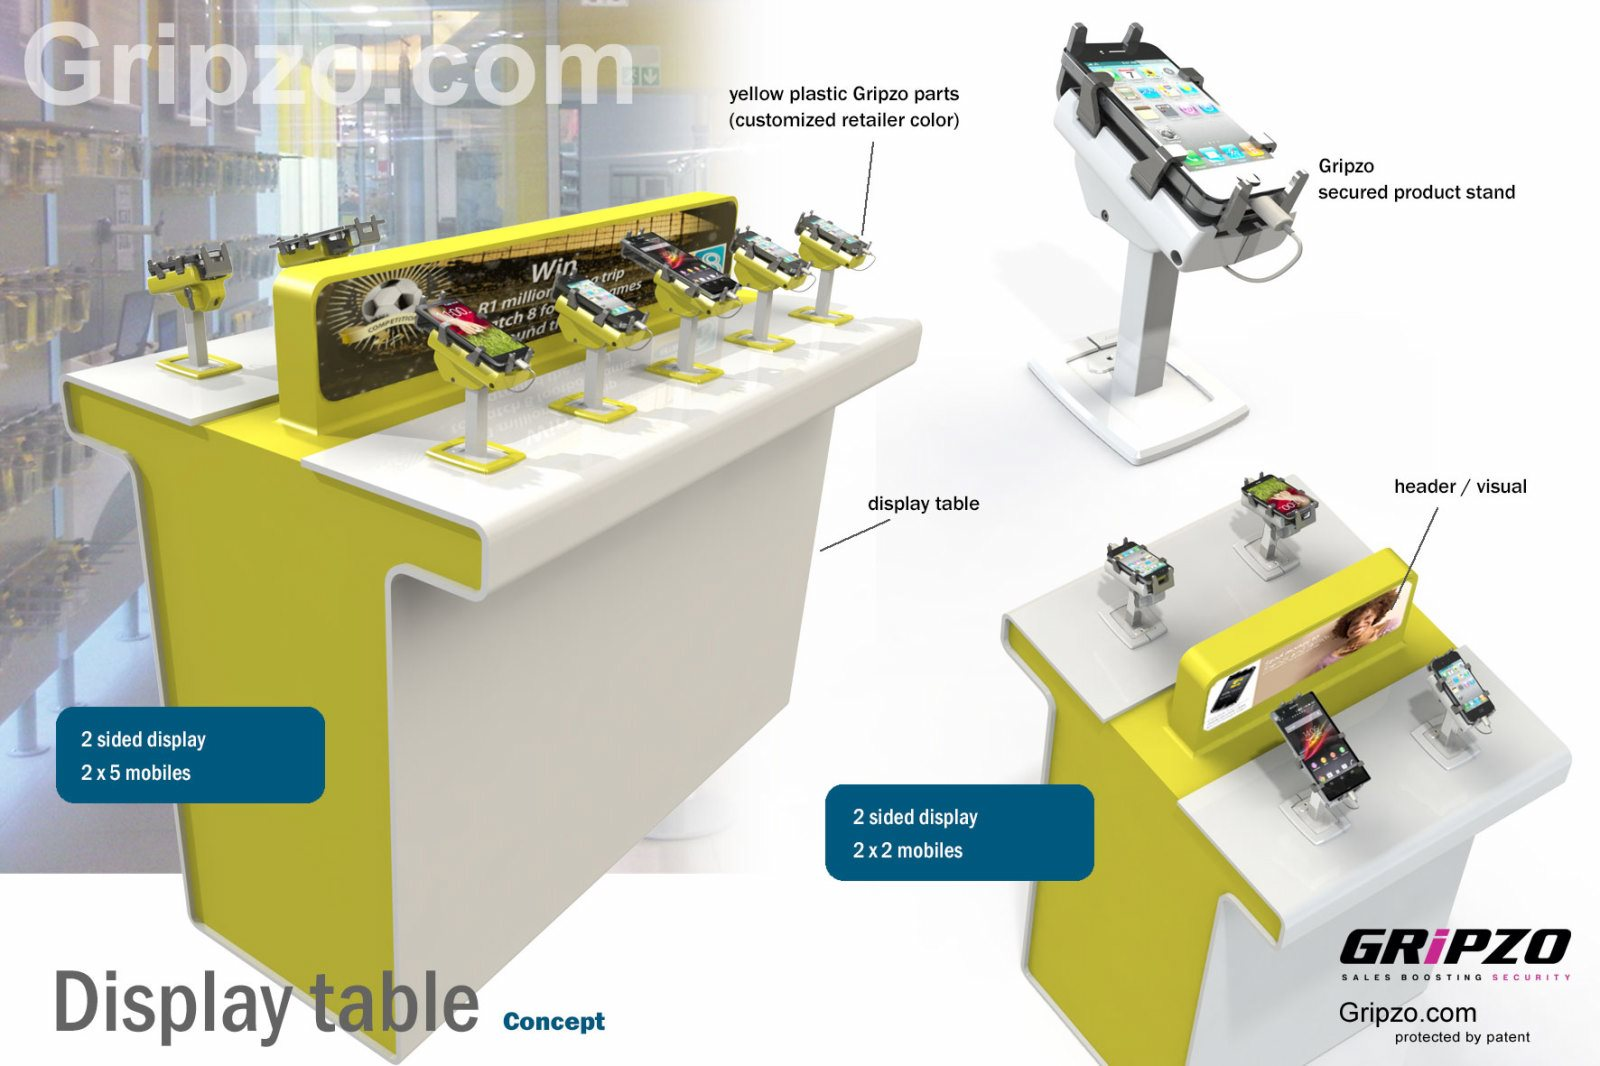 gripzo-custom-yellow-display-table-051213.jpg